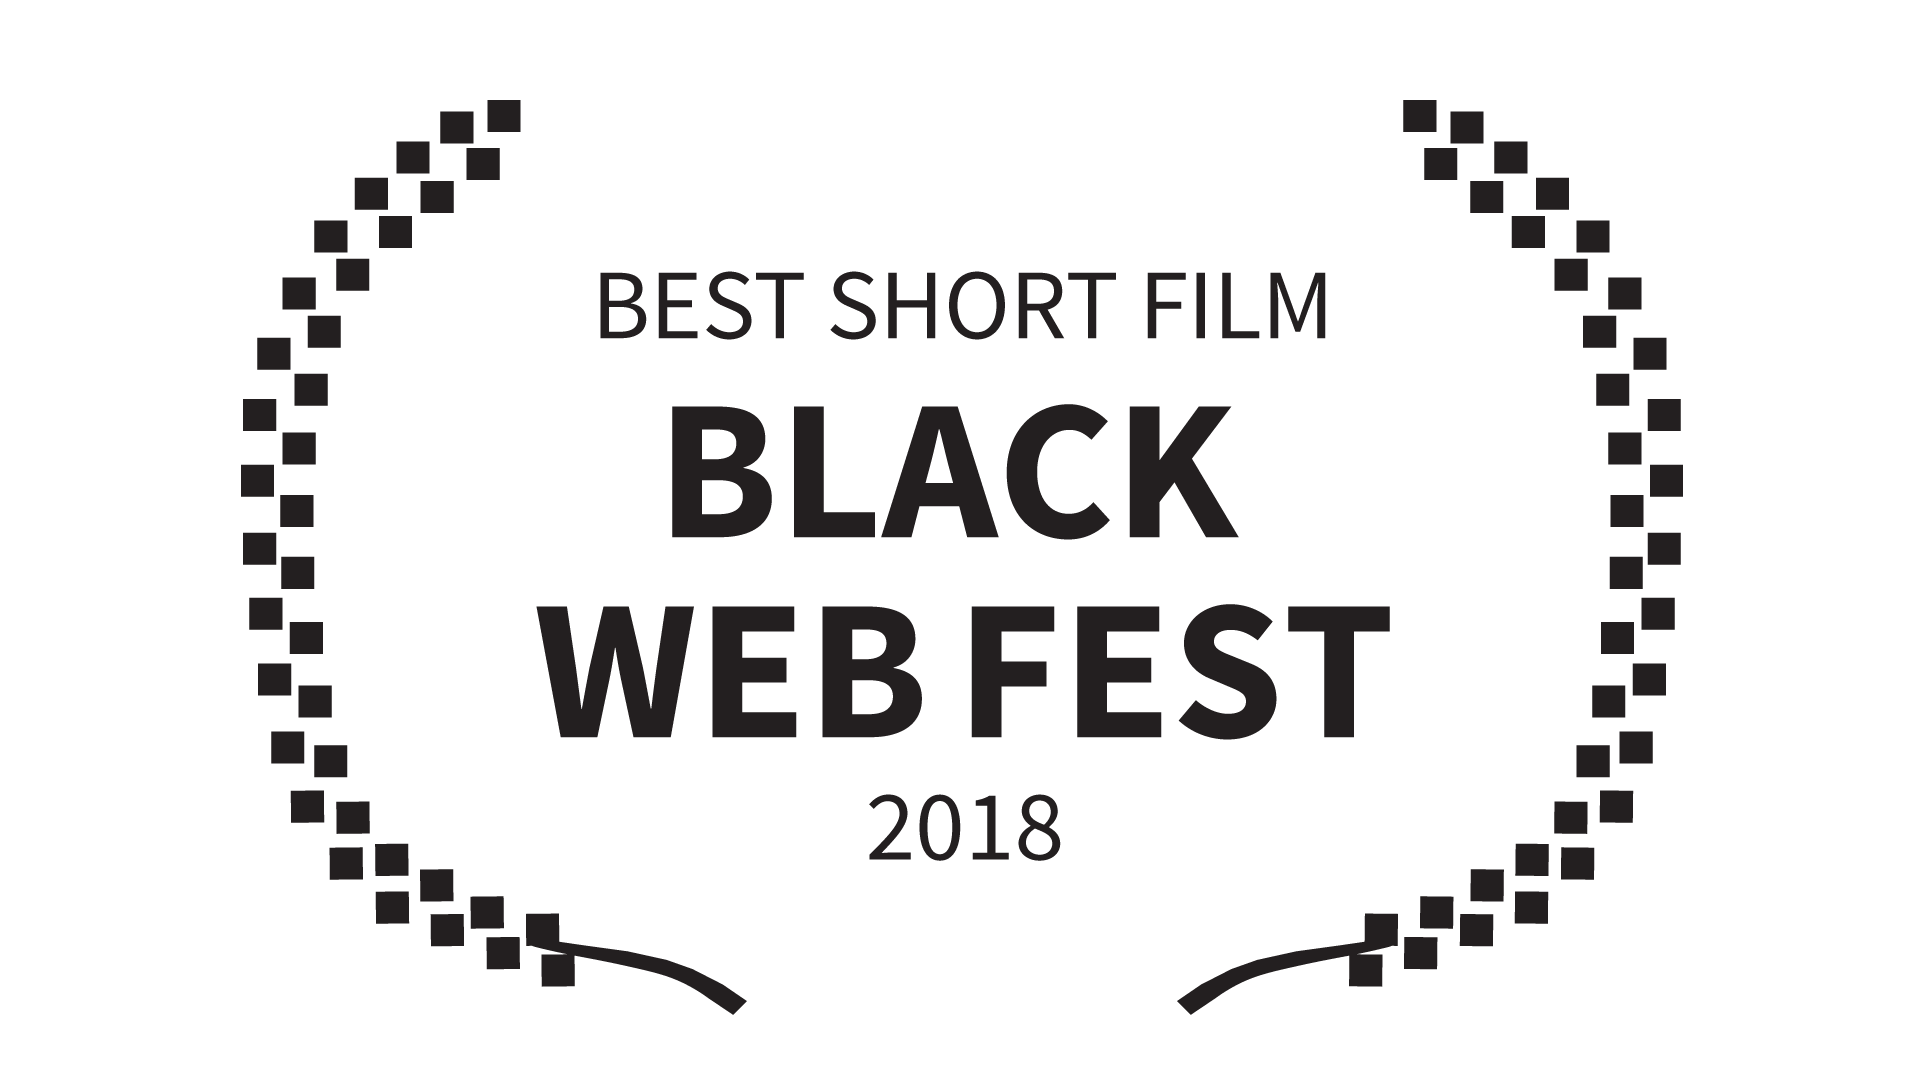 Black-Web-Fest-Laurel_Best-Short-Film.png